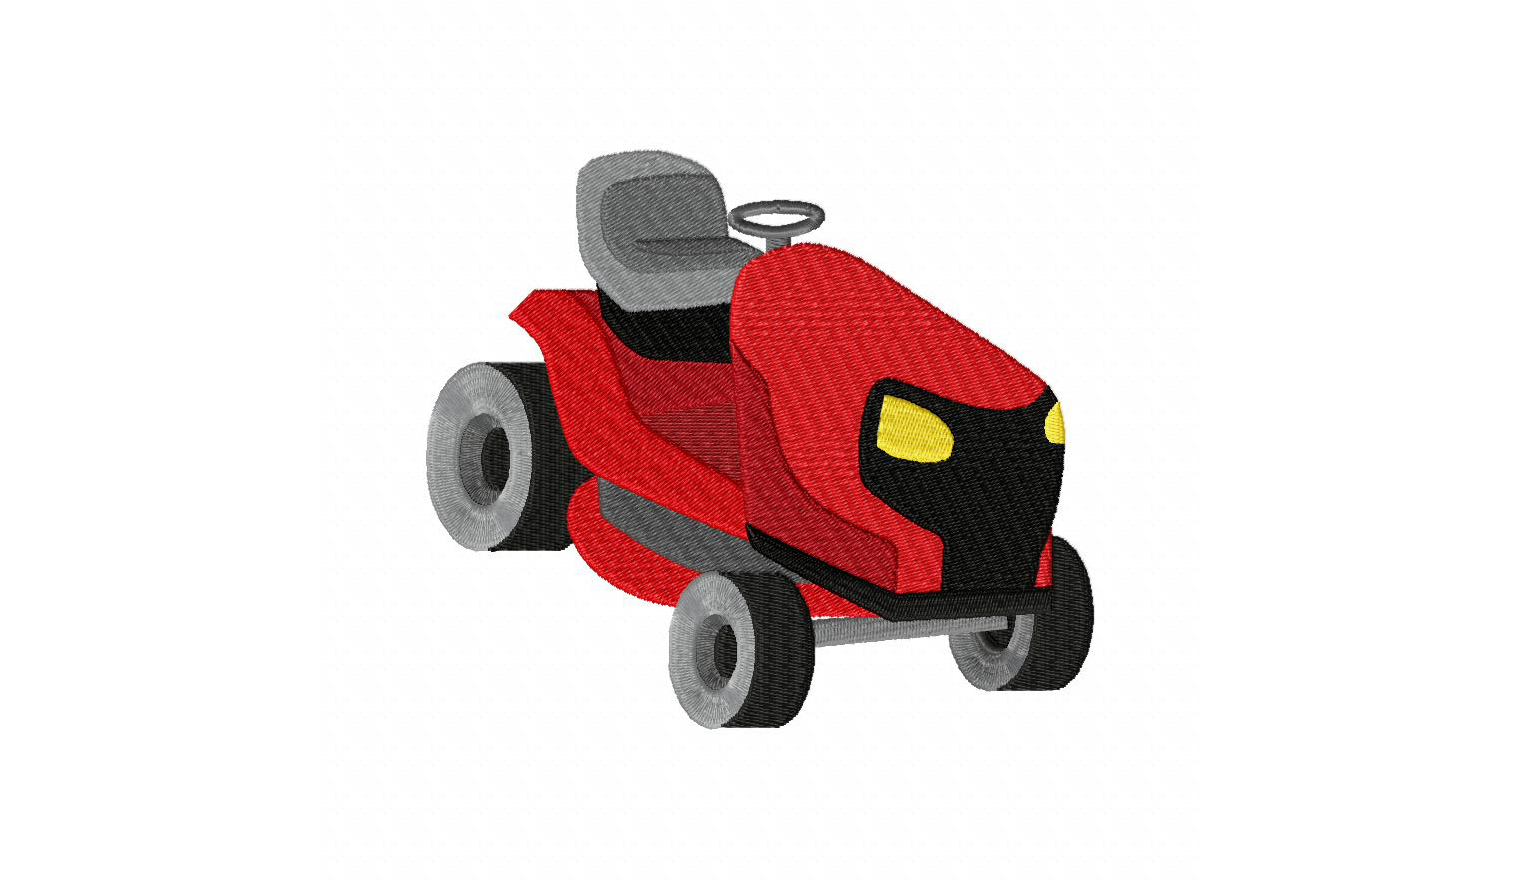 Riding lawn mower machine embroidery design - Lawn mower for small spaces decor ...